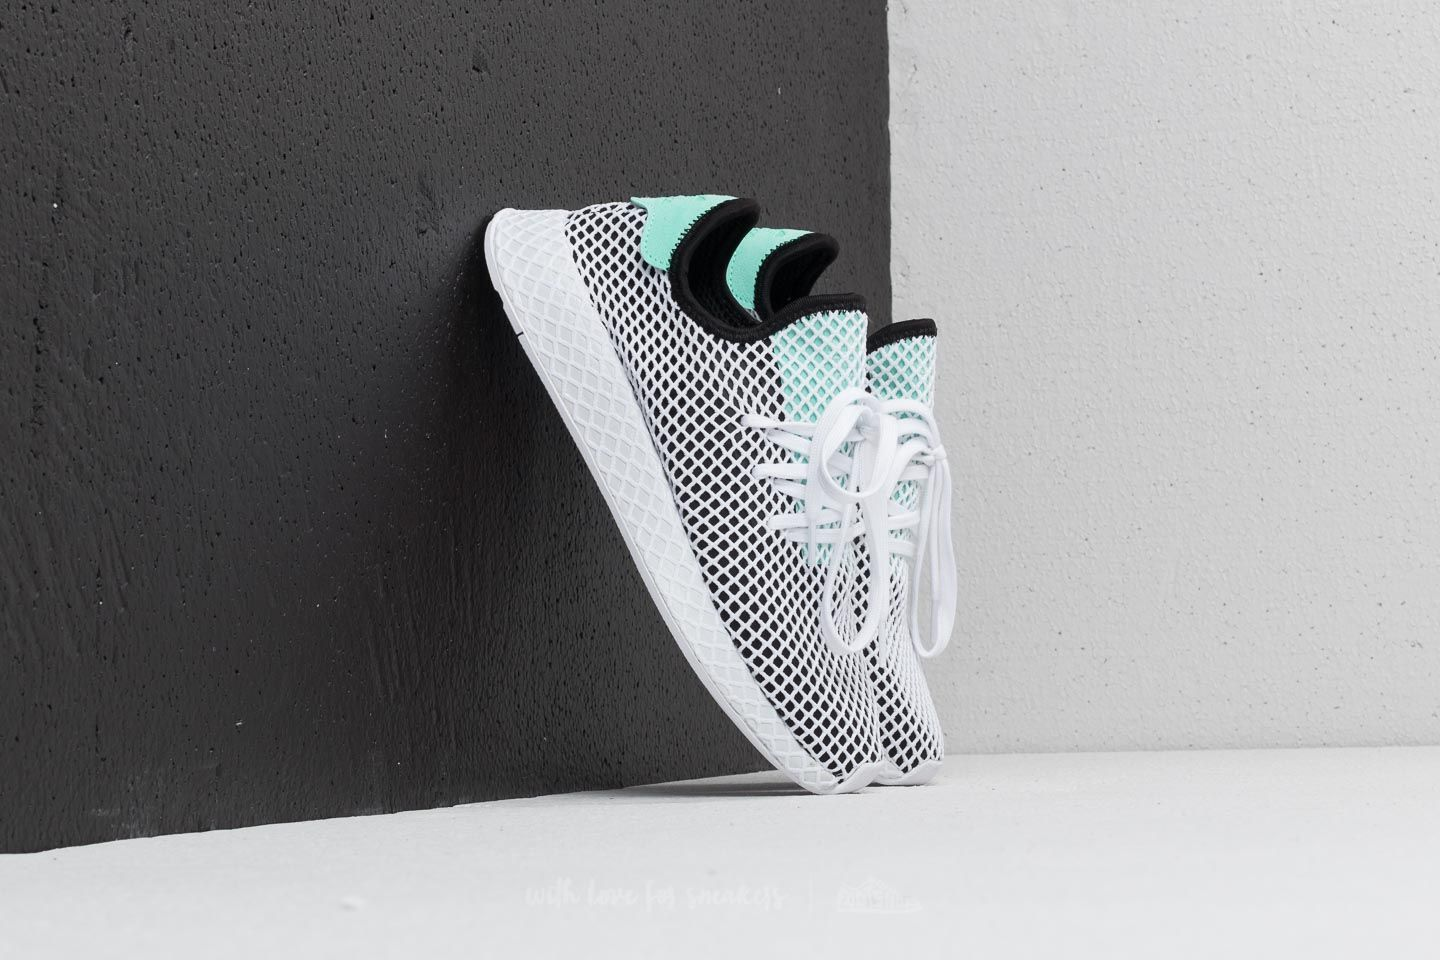 802f3ad2243dc8 adidas Deerupt Runner Core Black  Easy Green  Ftw White